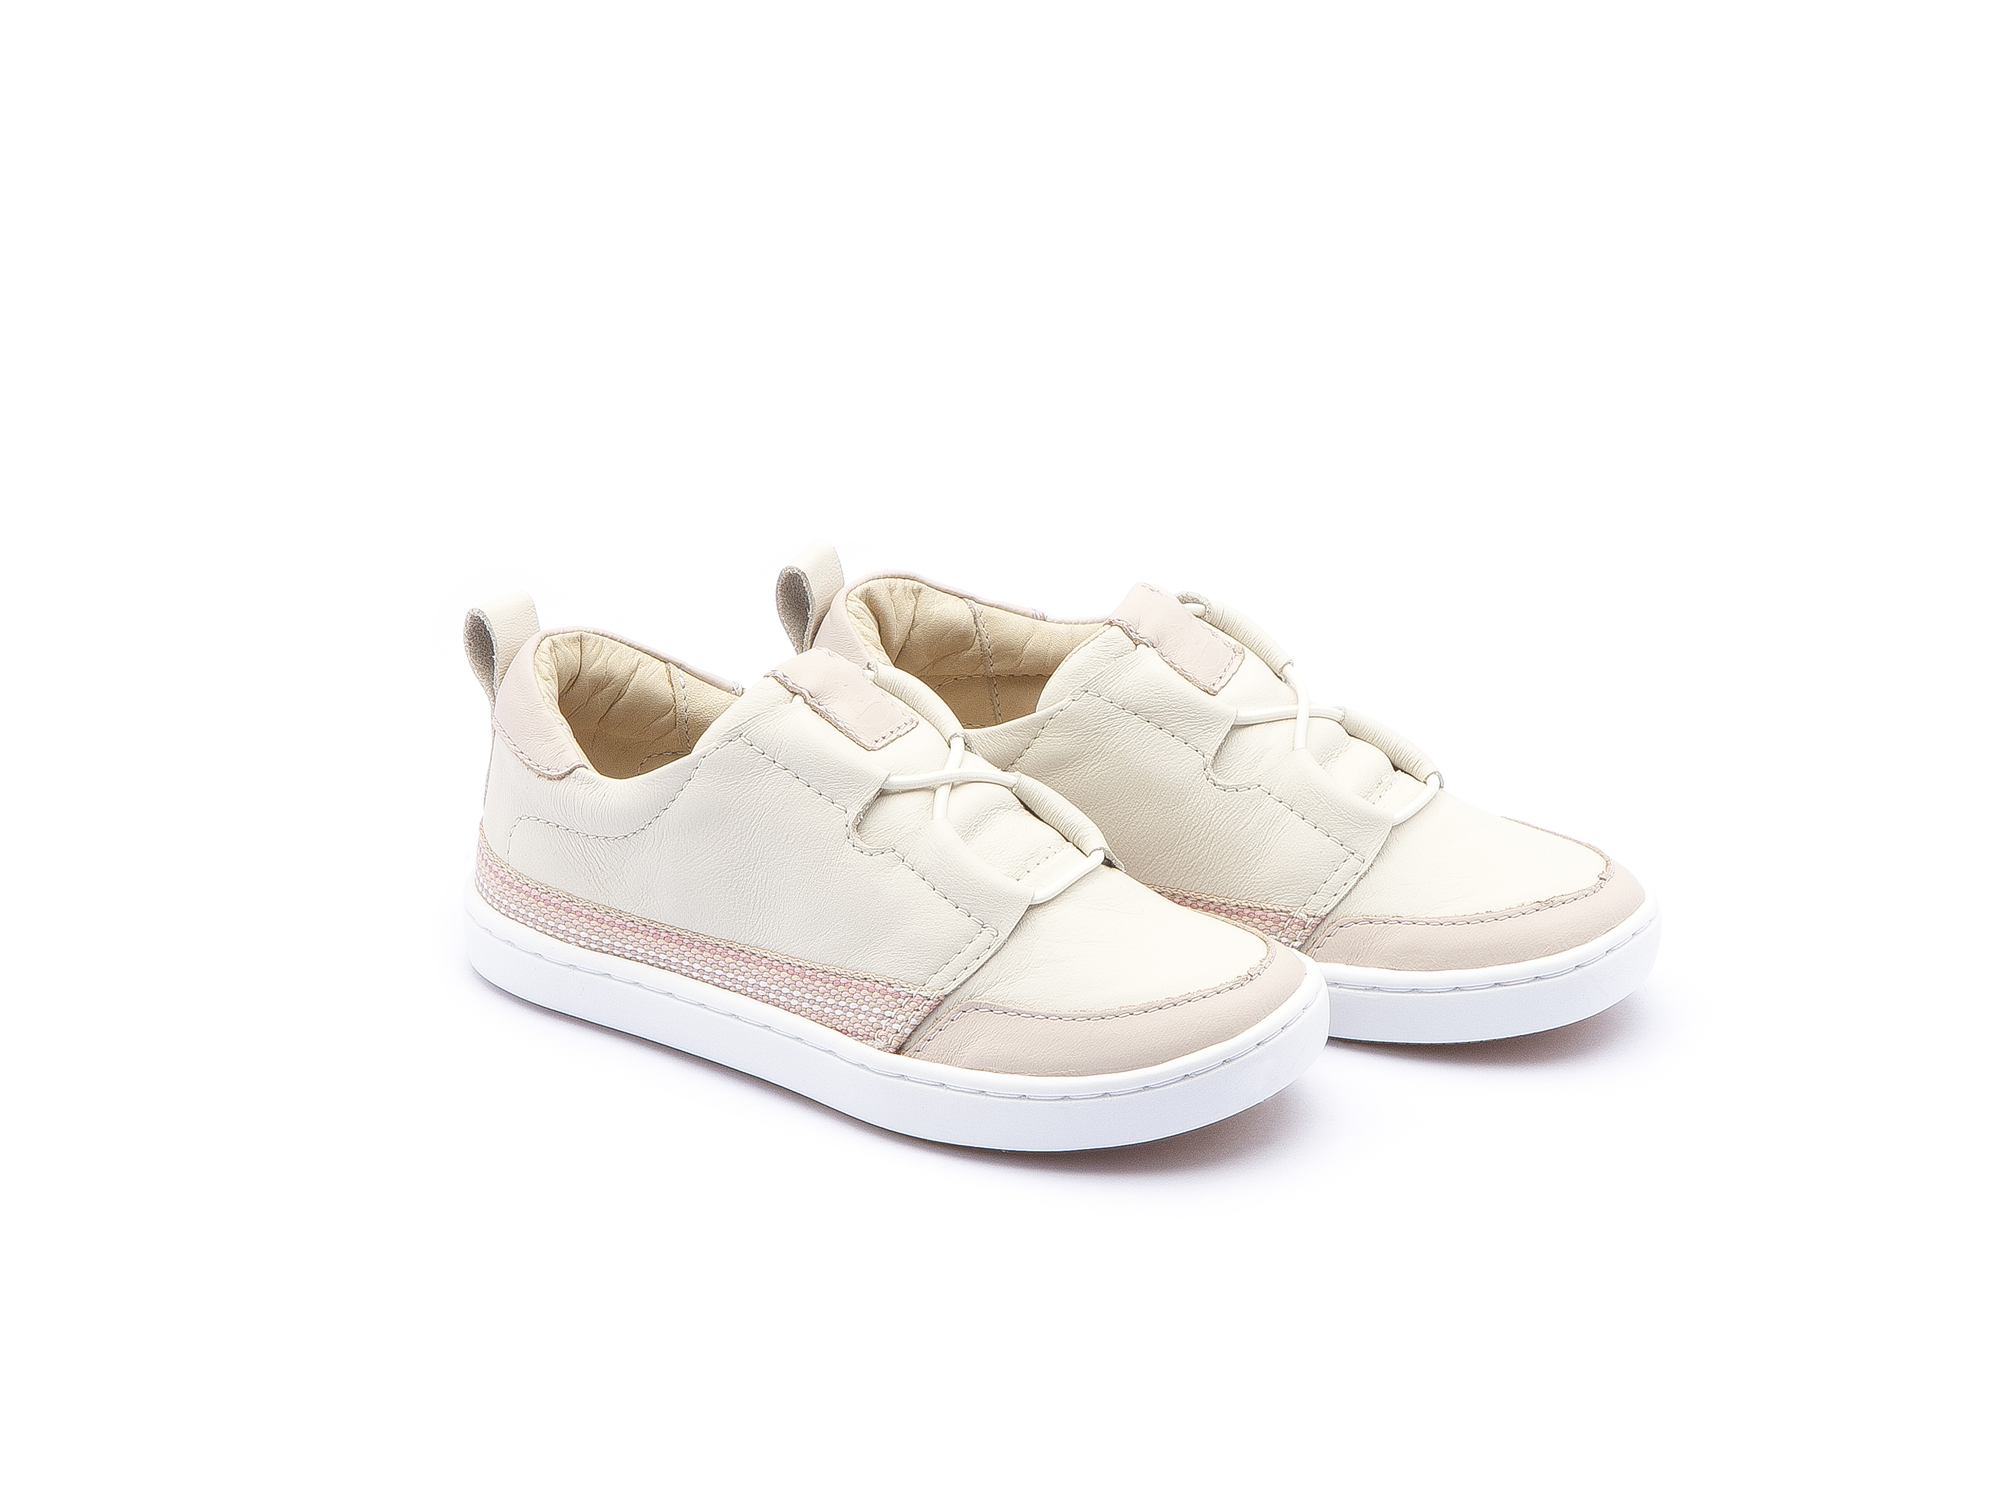 Sneaker Casual Little Ancestral Tapioca/ Cotton Candy Toddler 2 à 4 anos - 0